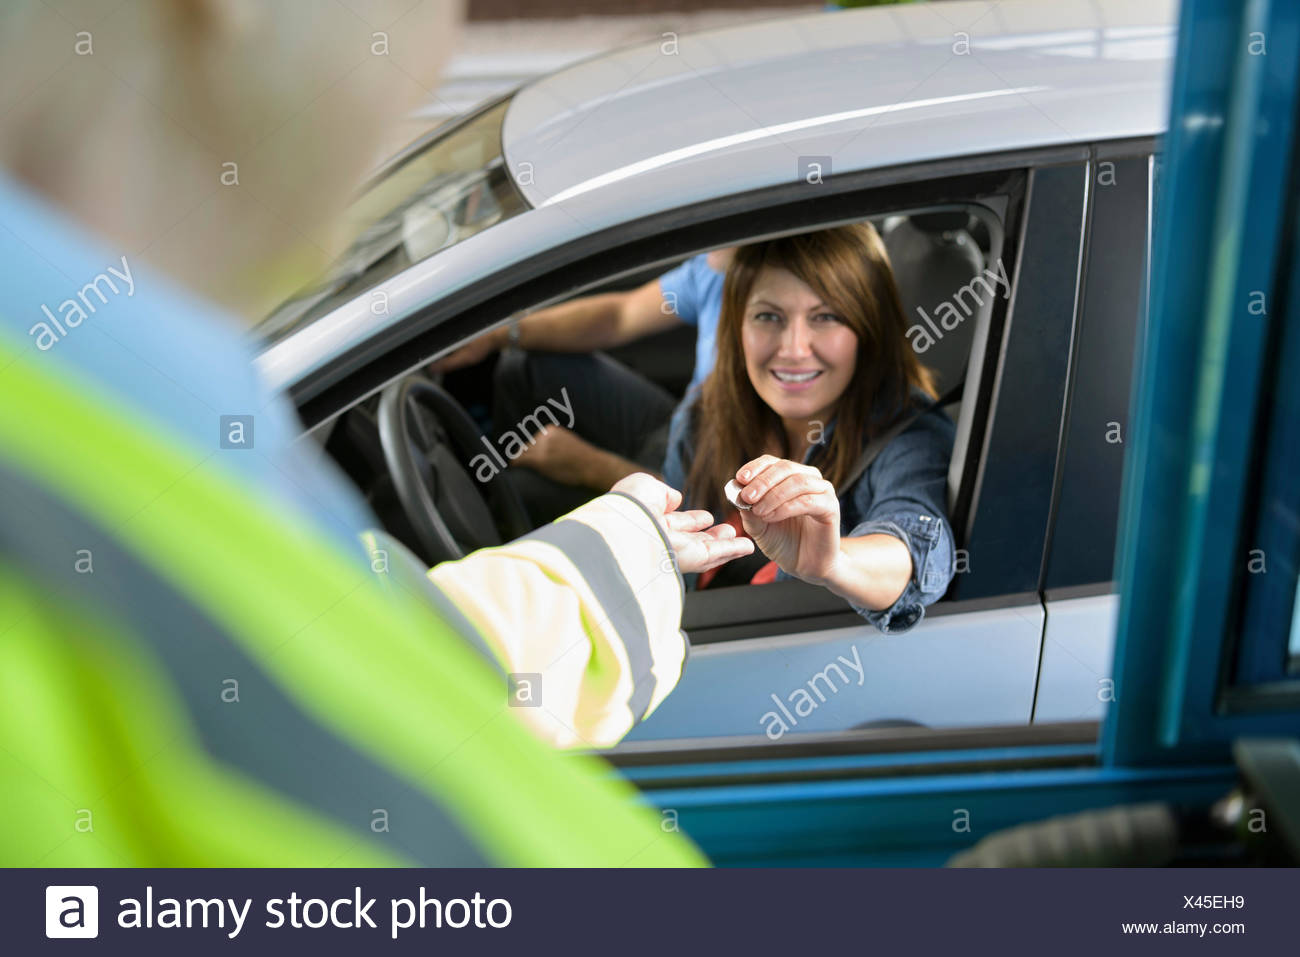 Driver in car paying toll booth at bridge - Stock Image